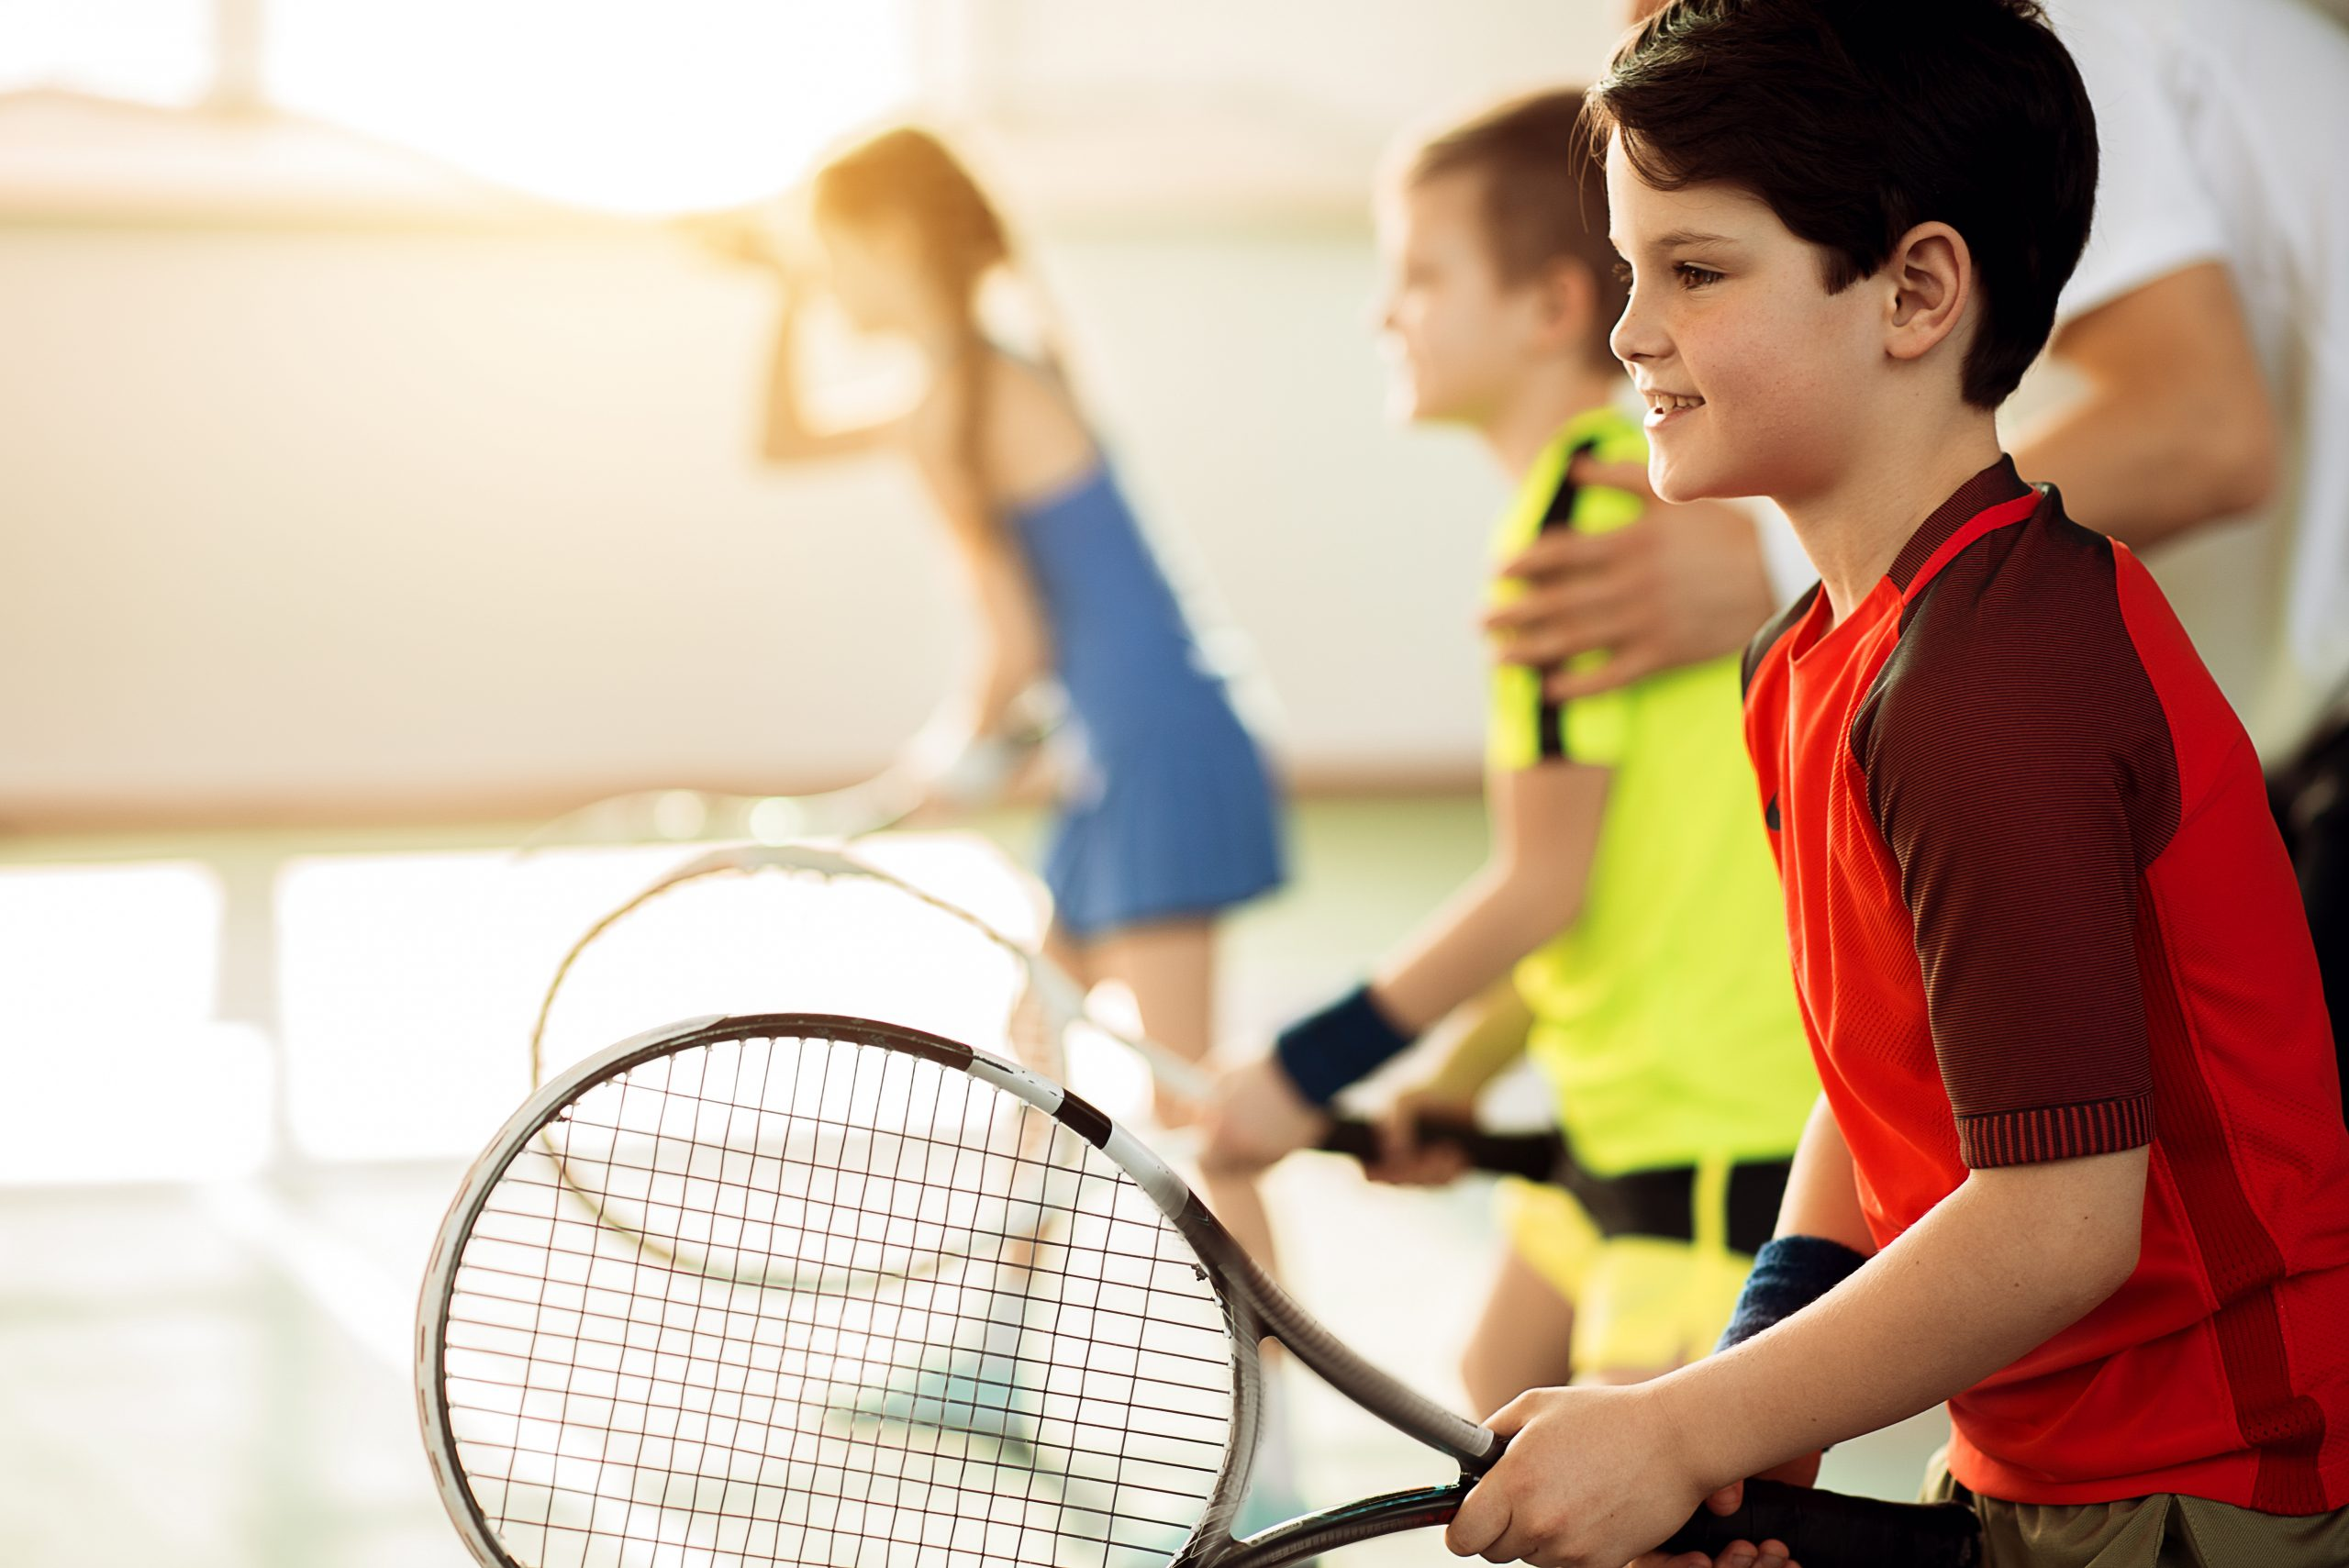 Junior Tennis Classes and Tennis Lessons with Ben at KTAC